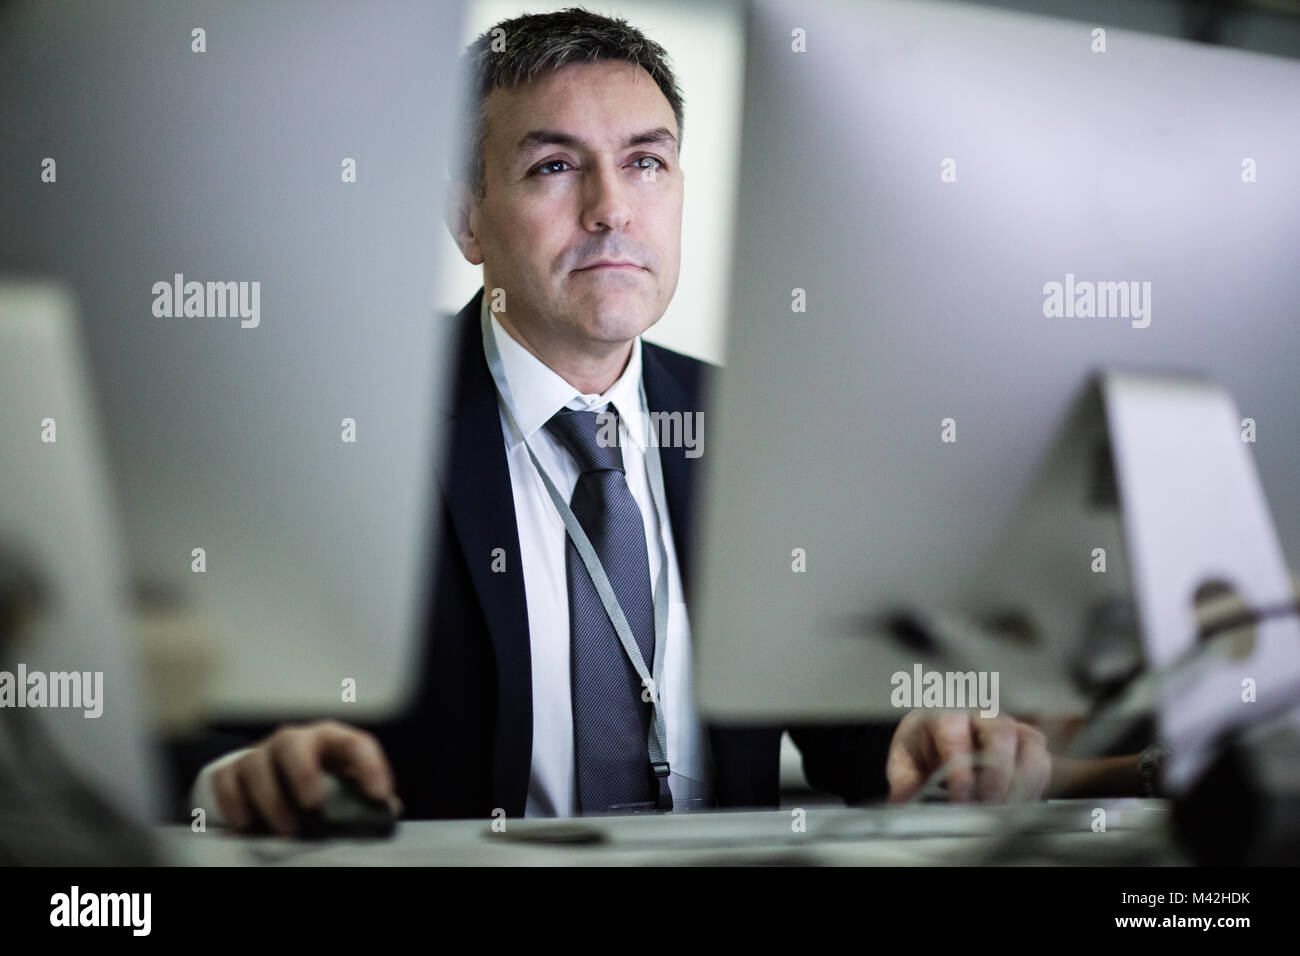 Businessman using computer late at night - Stock Image